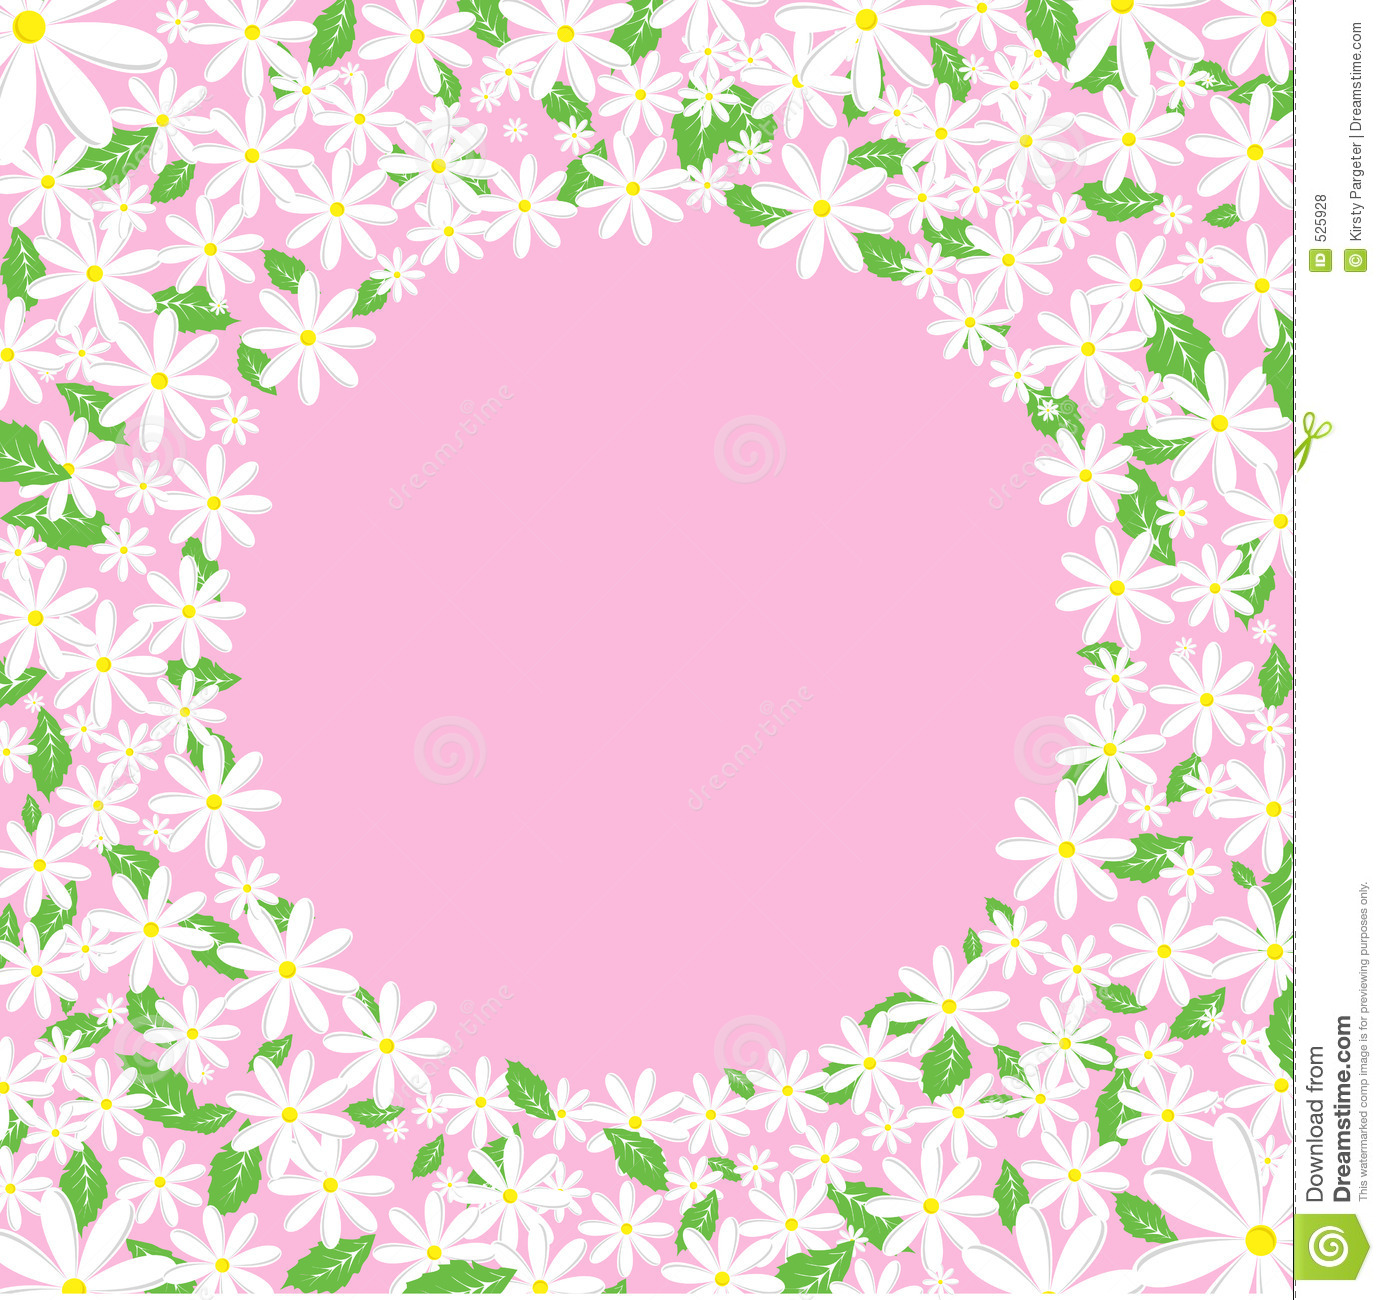 Clipart Daisy Border All About Clipart